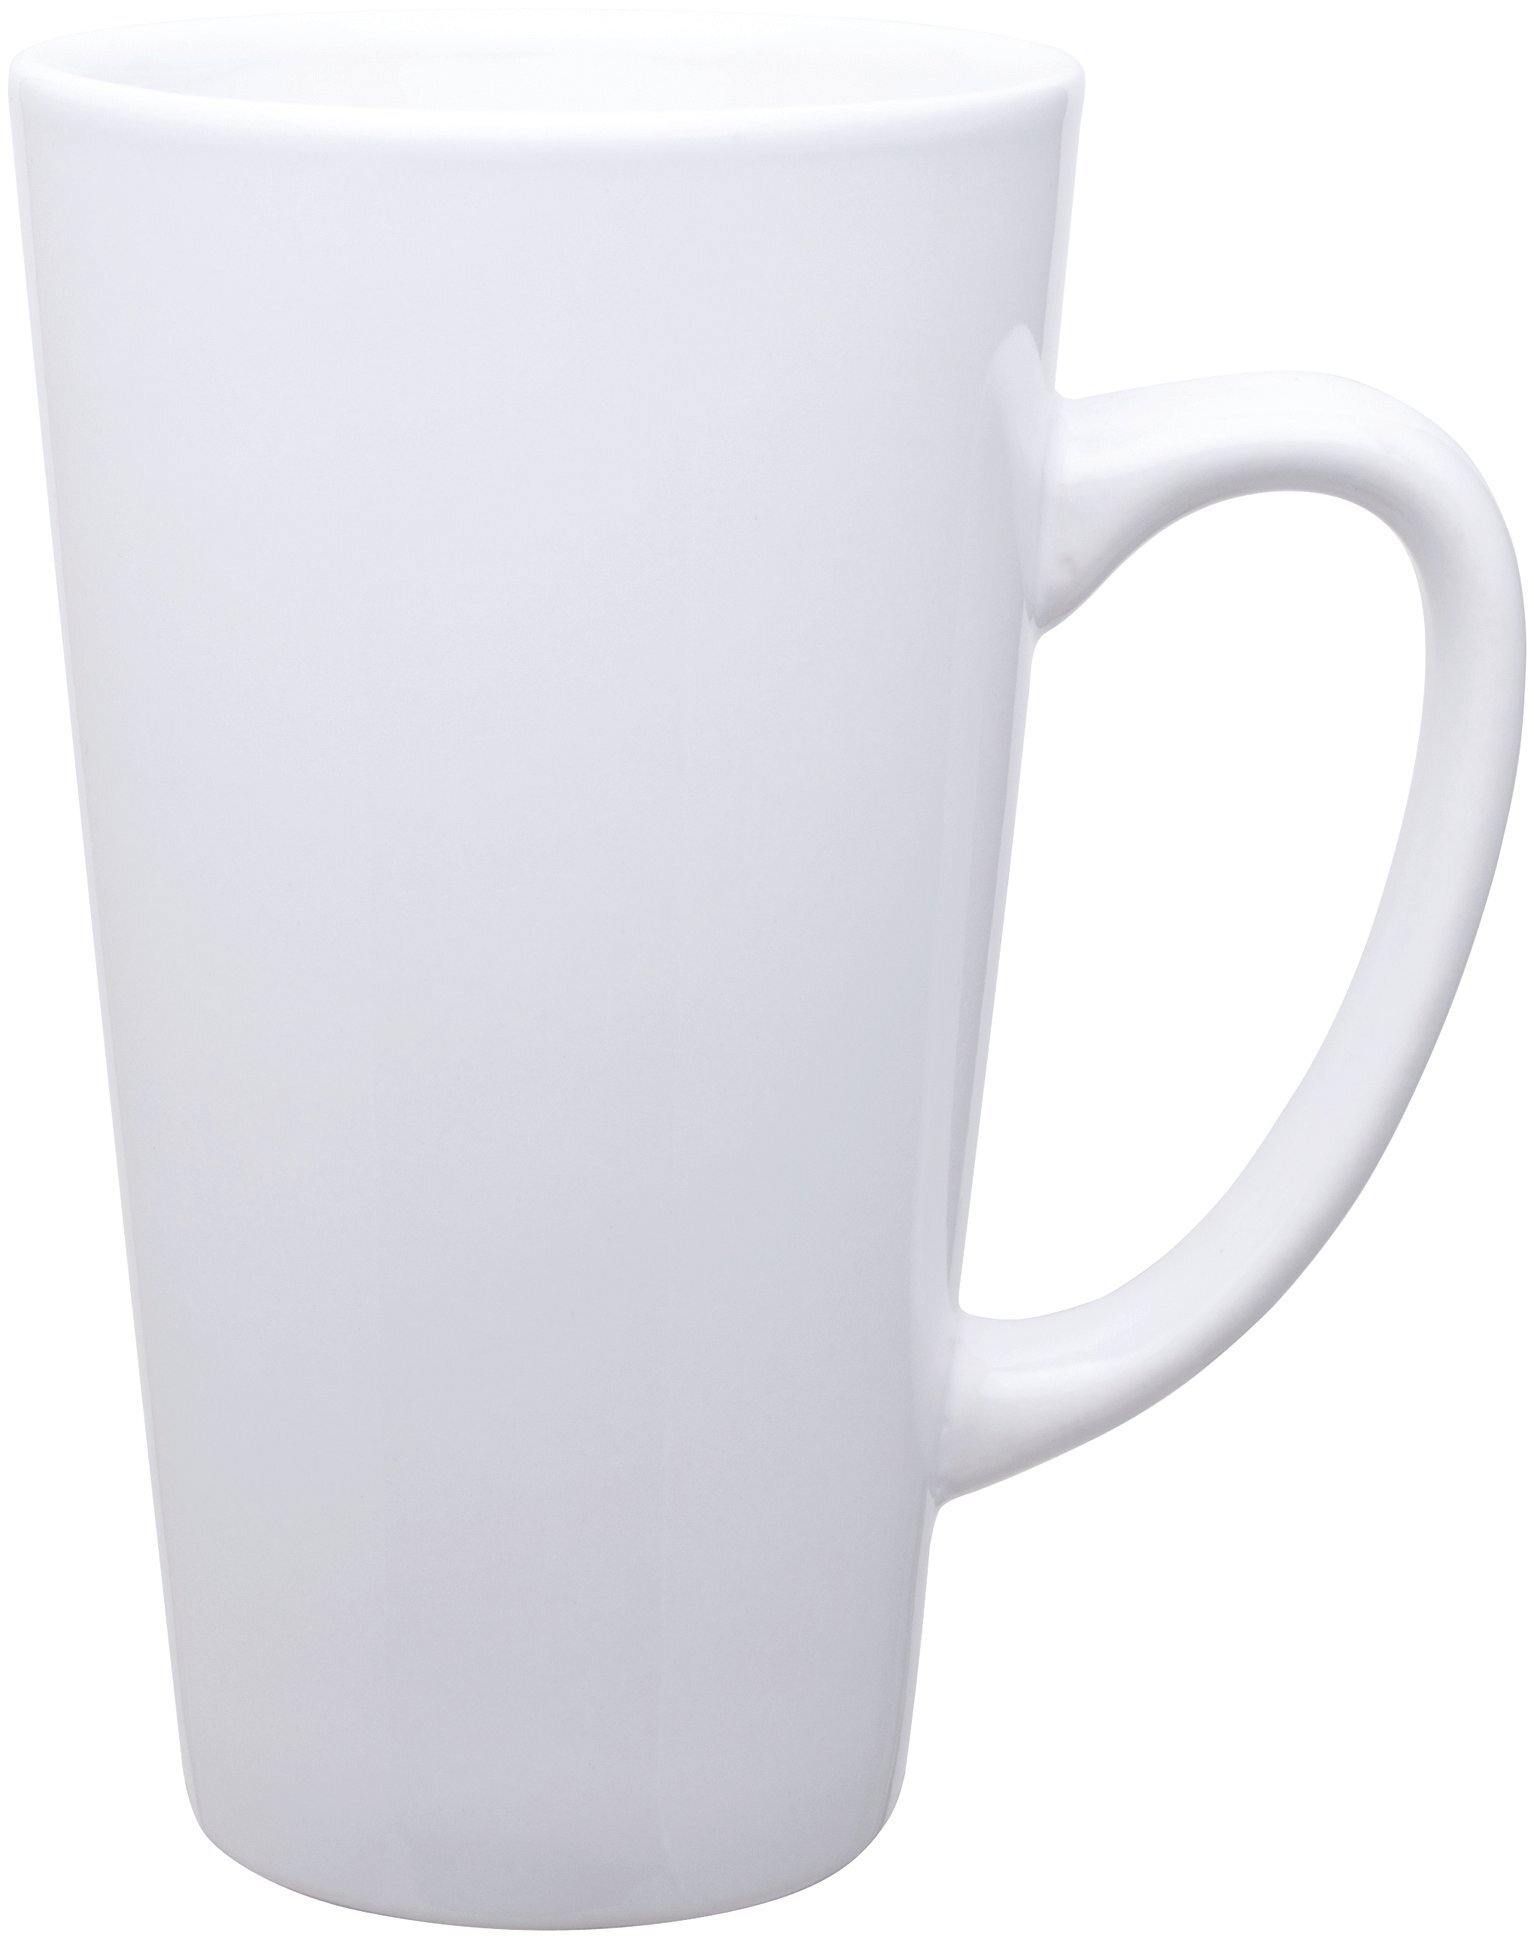 Batavia Tall Latte Mug, 16oz., White